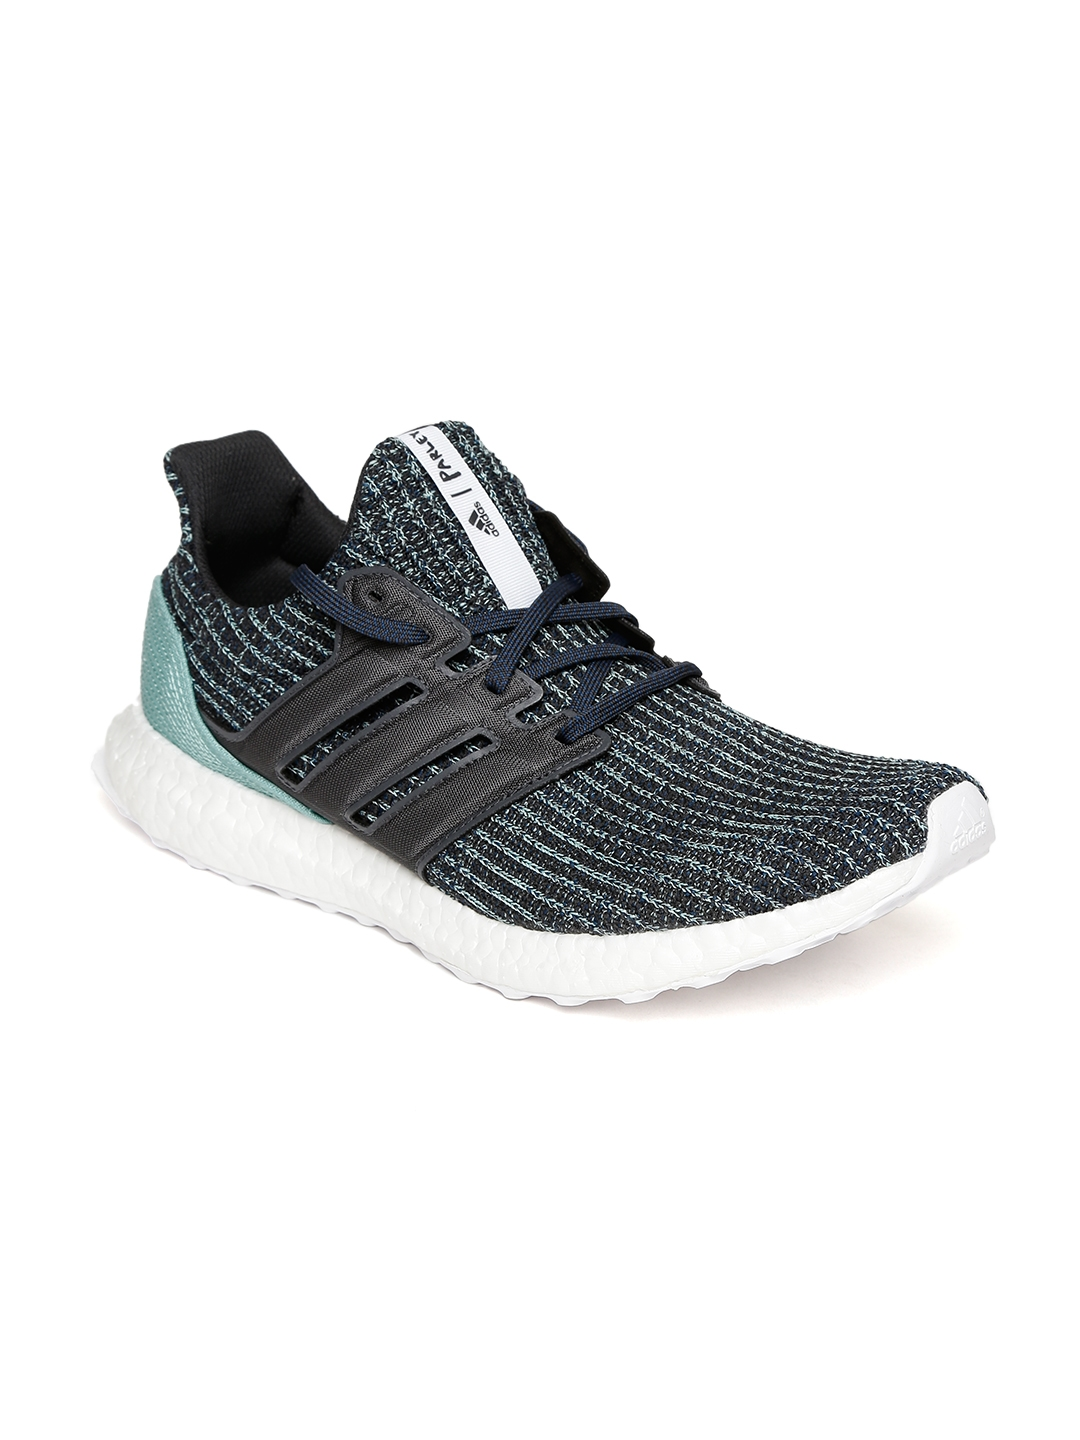 d6a23009e8d Buy ADIDAS Men Blue   Black Ultraboost PARLEY Running Shoes - Sports ...